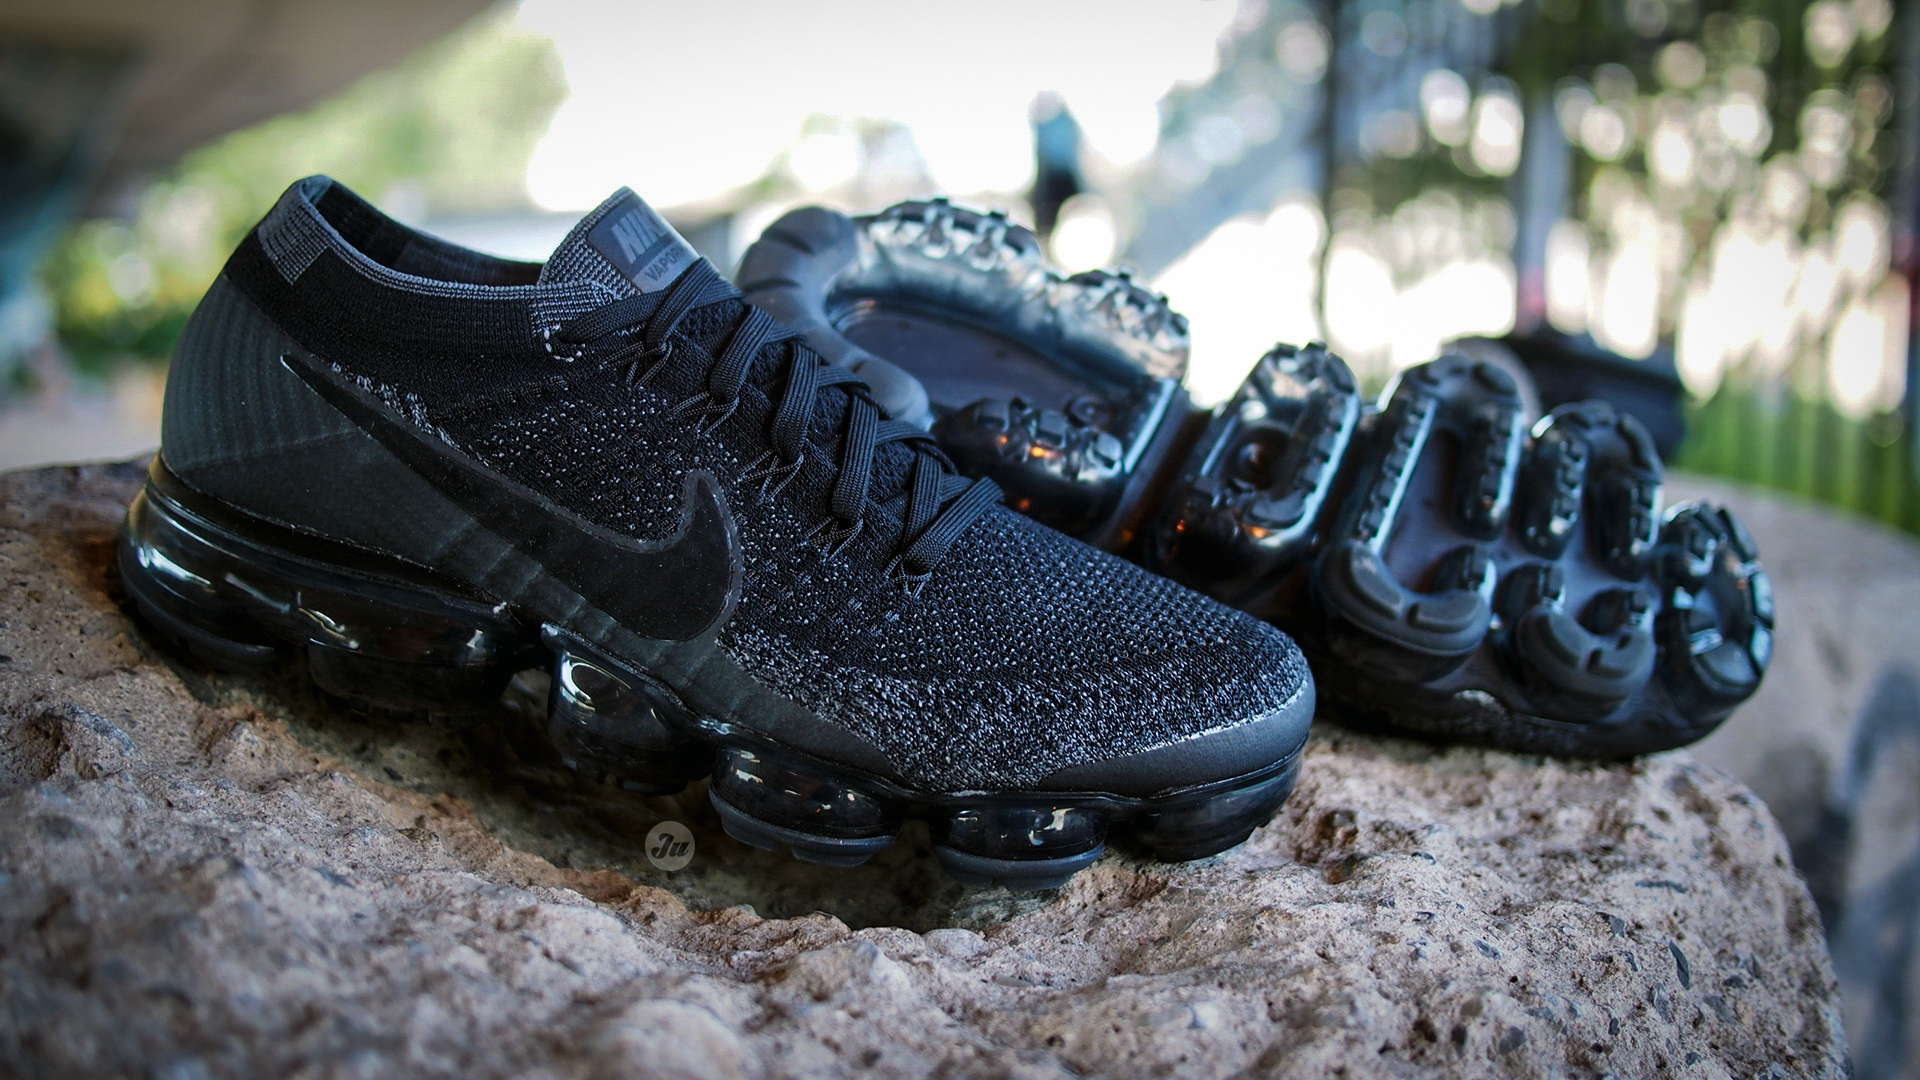 212ab7b664e69 Nike Air VaporMax - an update   review on my new go-to comfortable sneakers